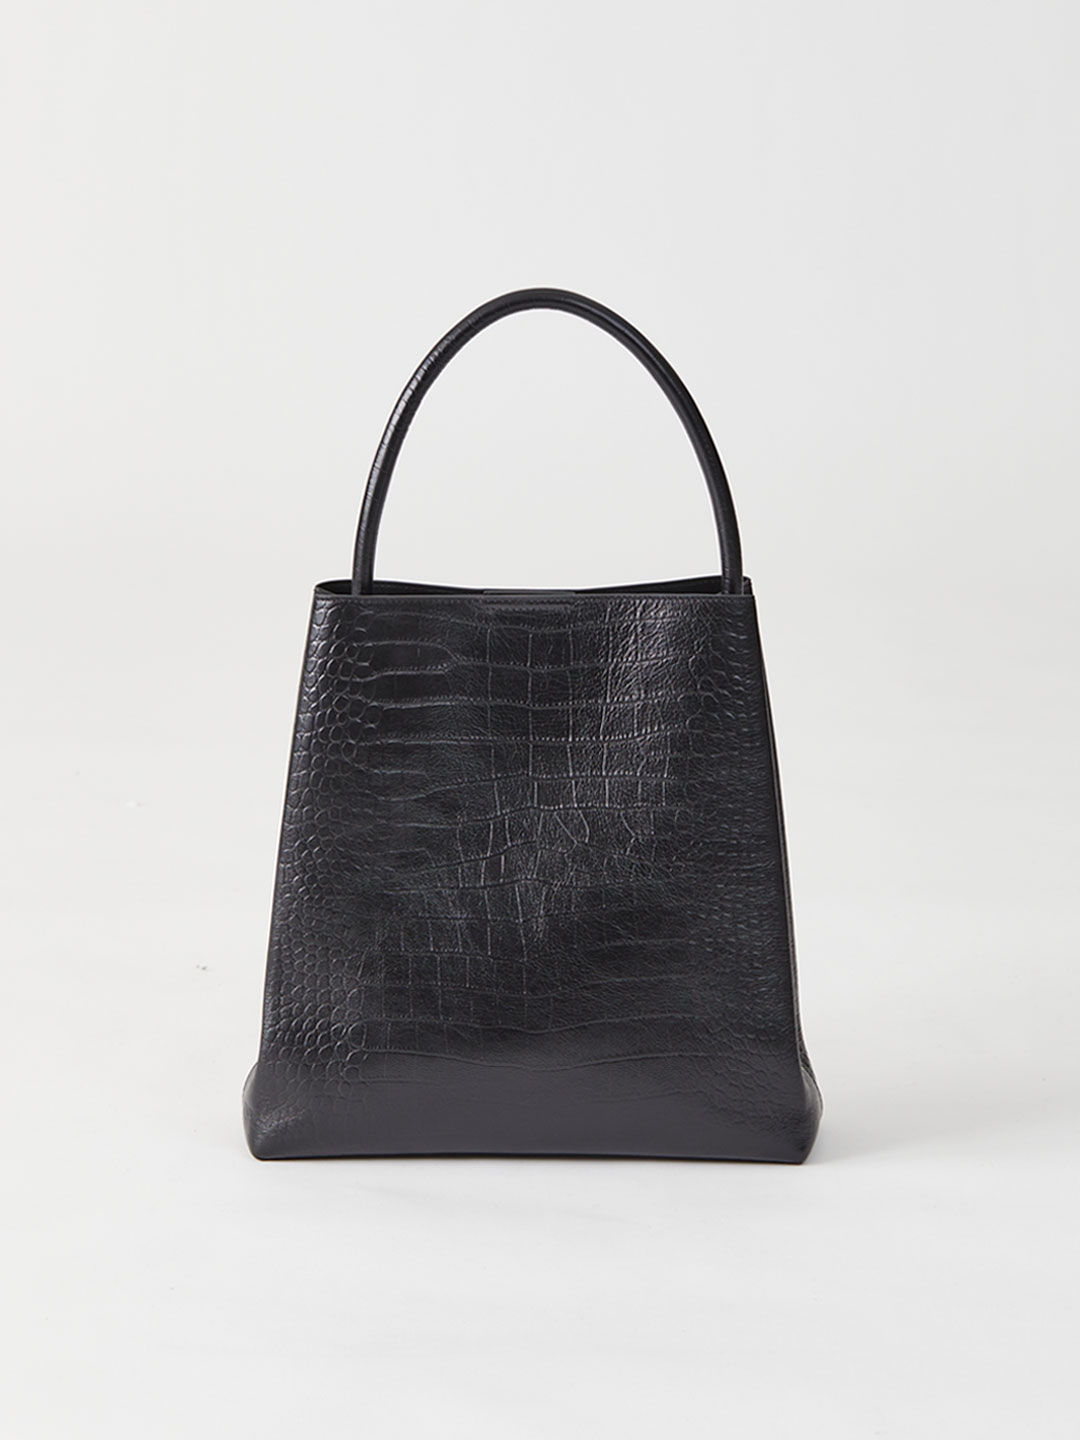 Arch Handle Pleat Tote Bag - Black